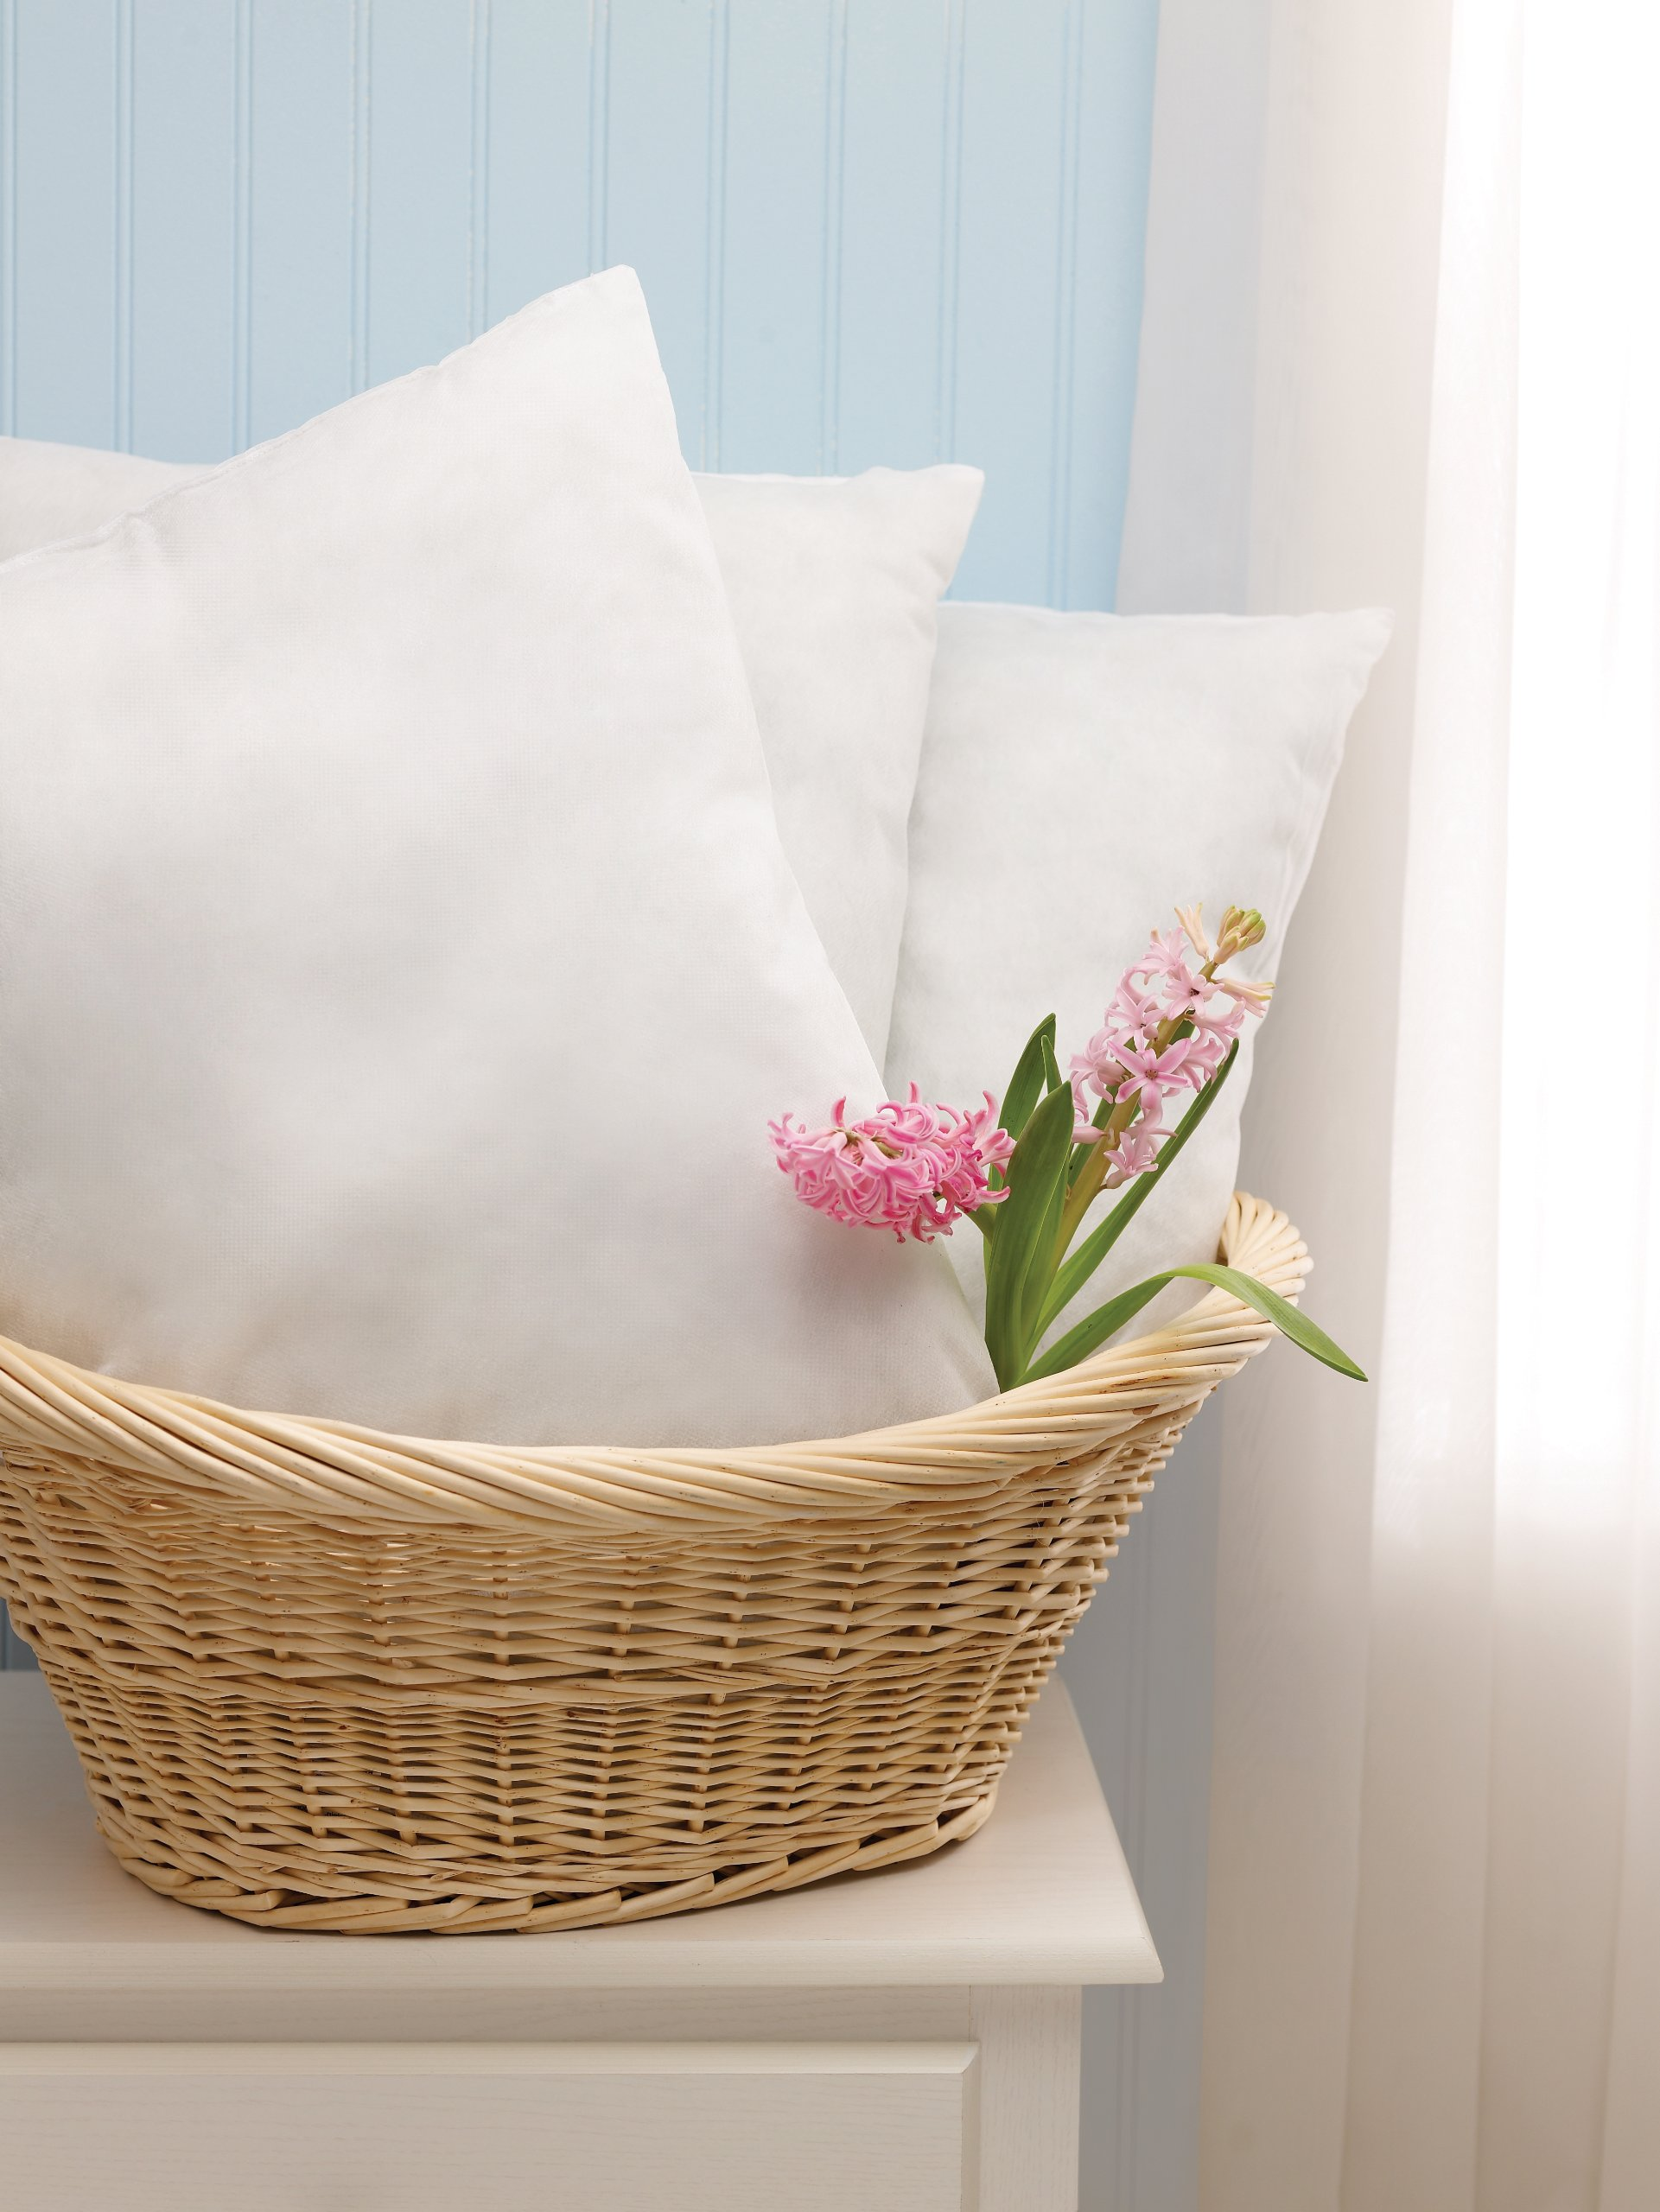 Medline NON24391 Classic Disposable Pillows, 16'' x 22'', White (Pack of 12)